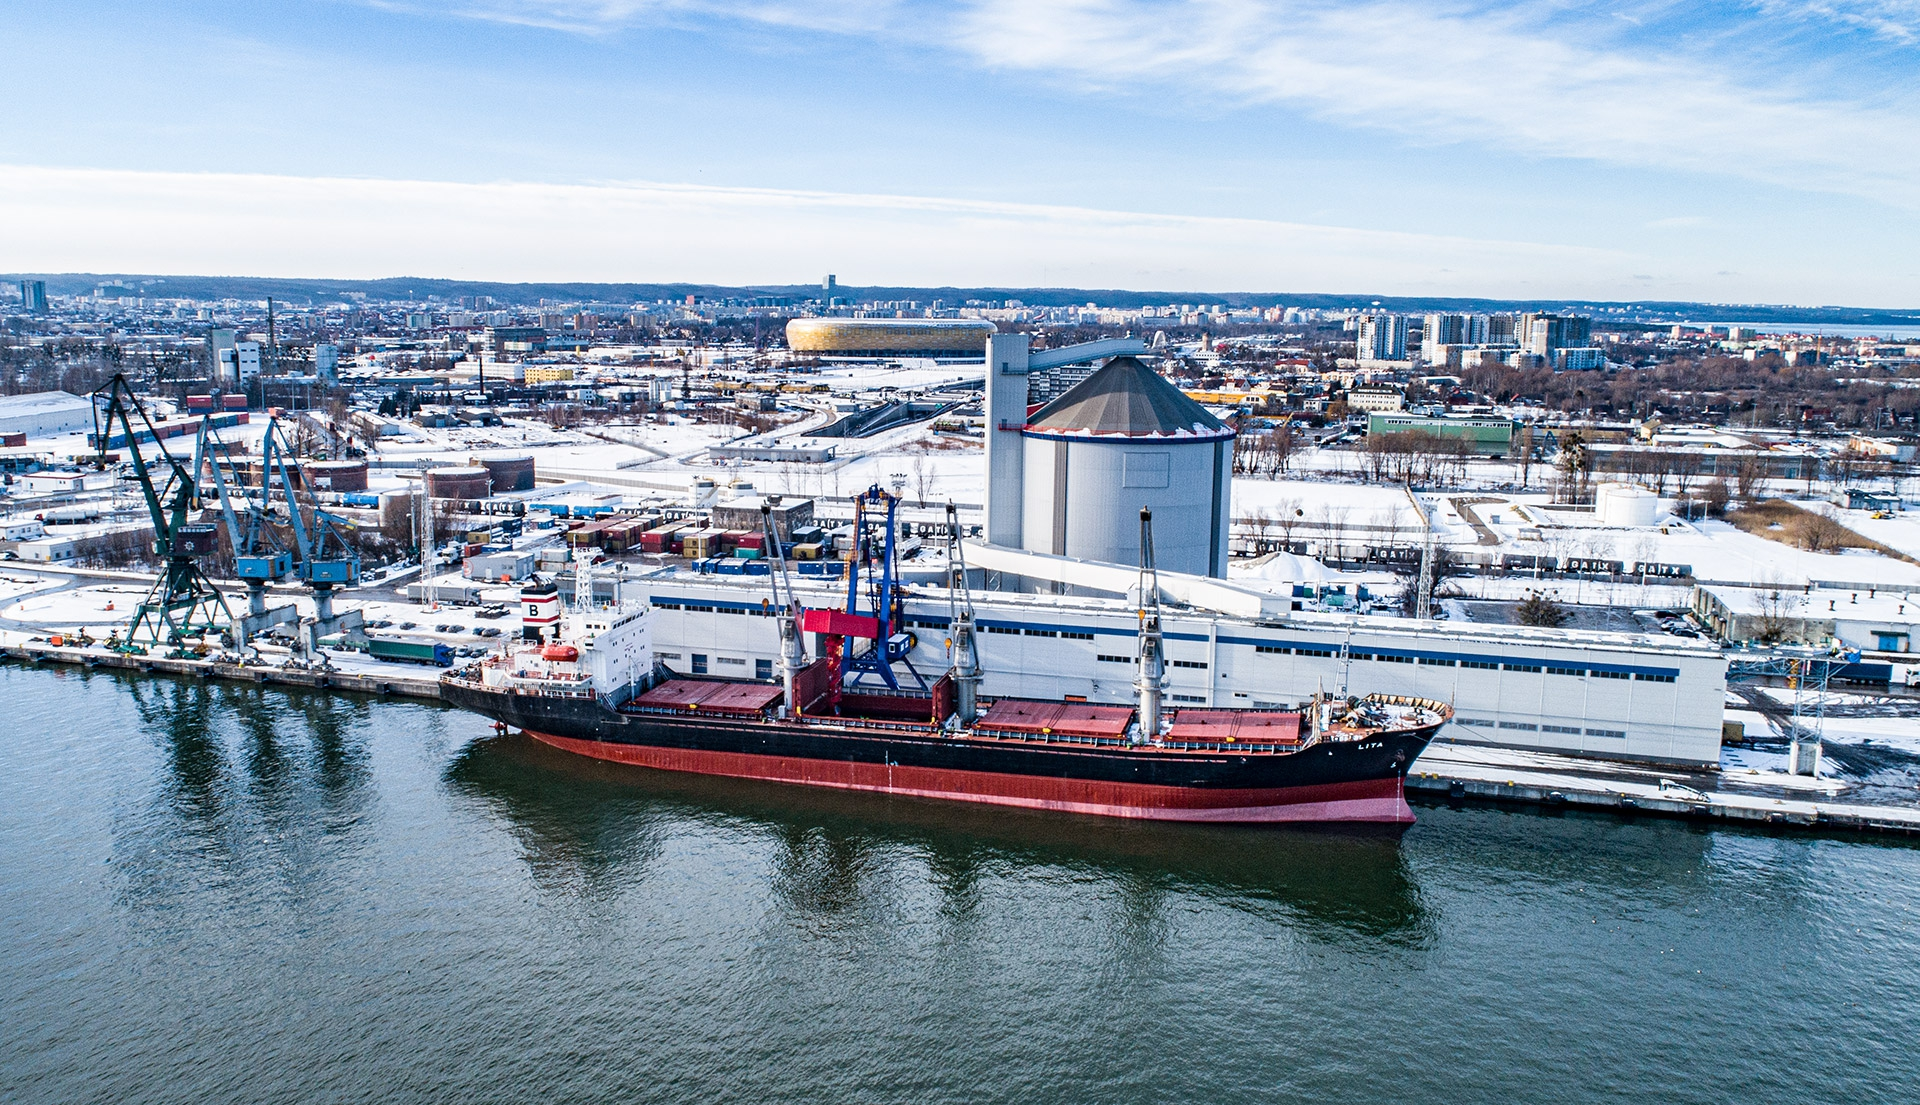 Pioneering loading of 15,000 tons of sugar at the new Sugar Terminal at the Port of Gdansk